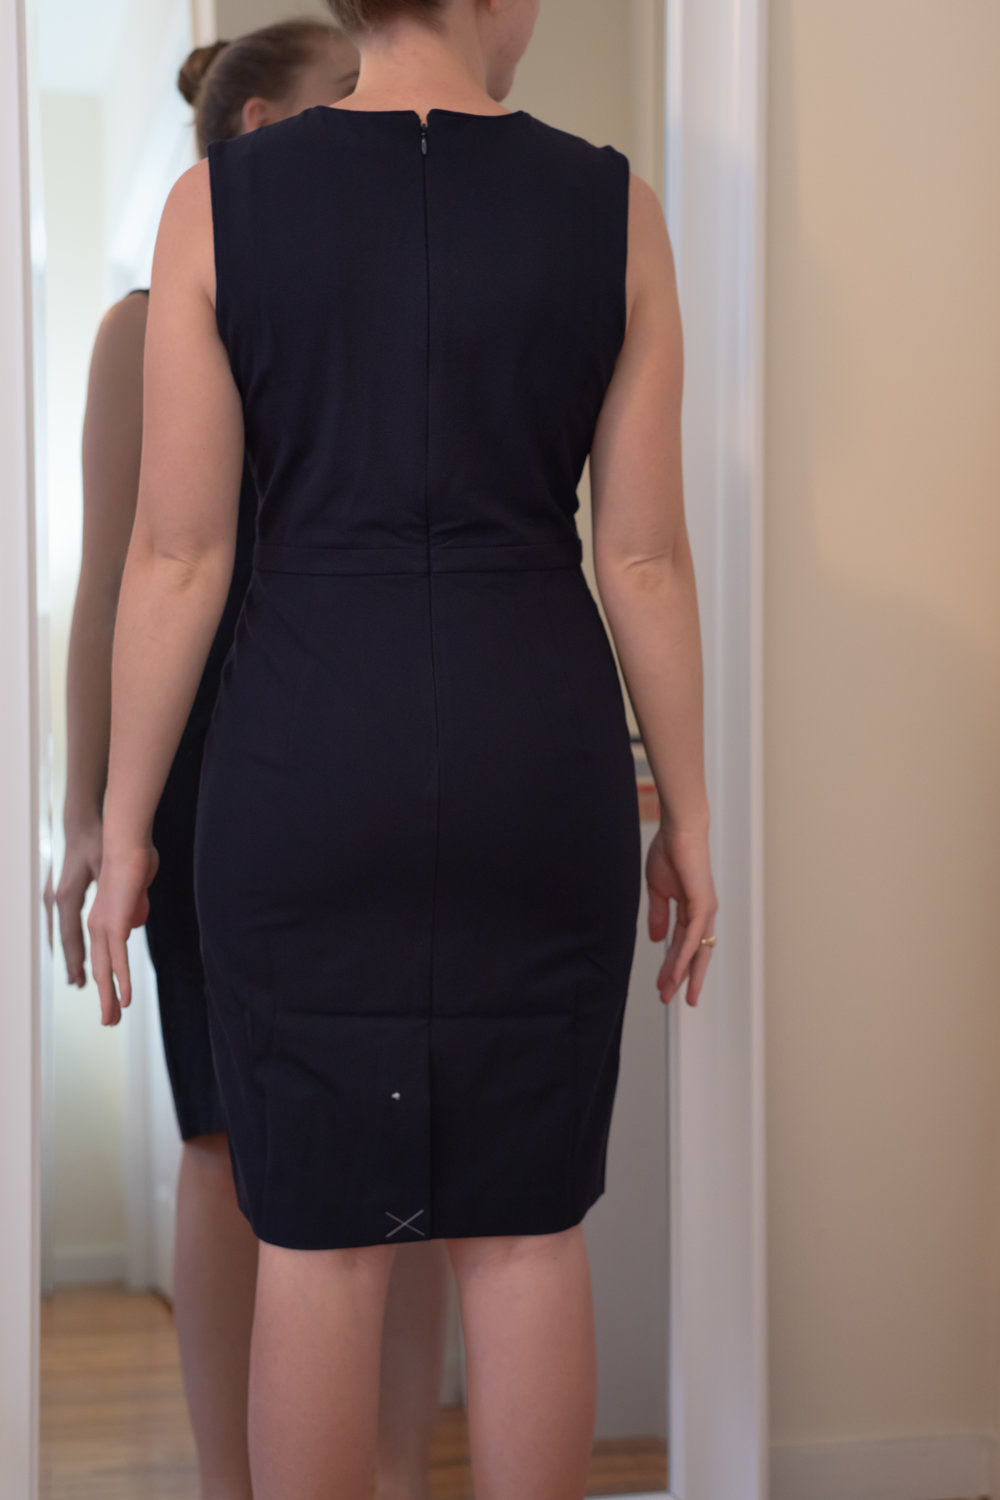 Ann Taylor Petite Seasonless Stretch Sheath Dress - Size 4 Petite